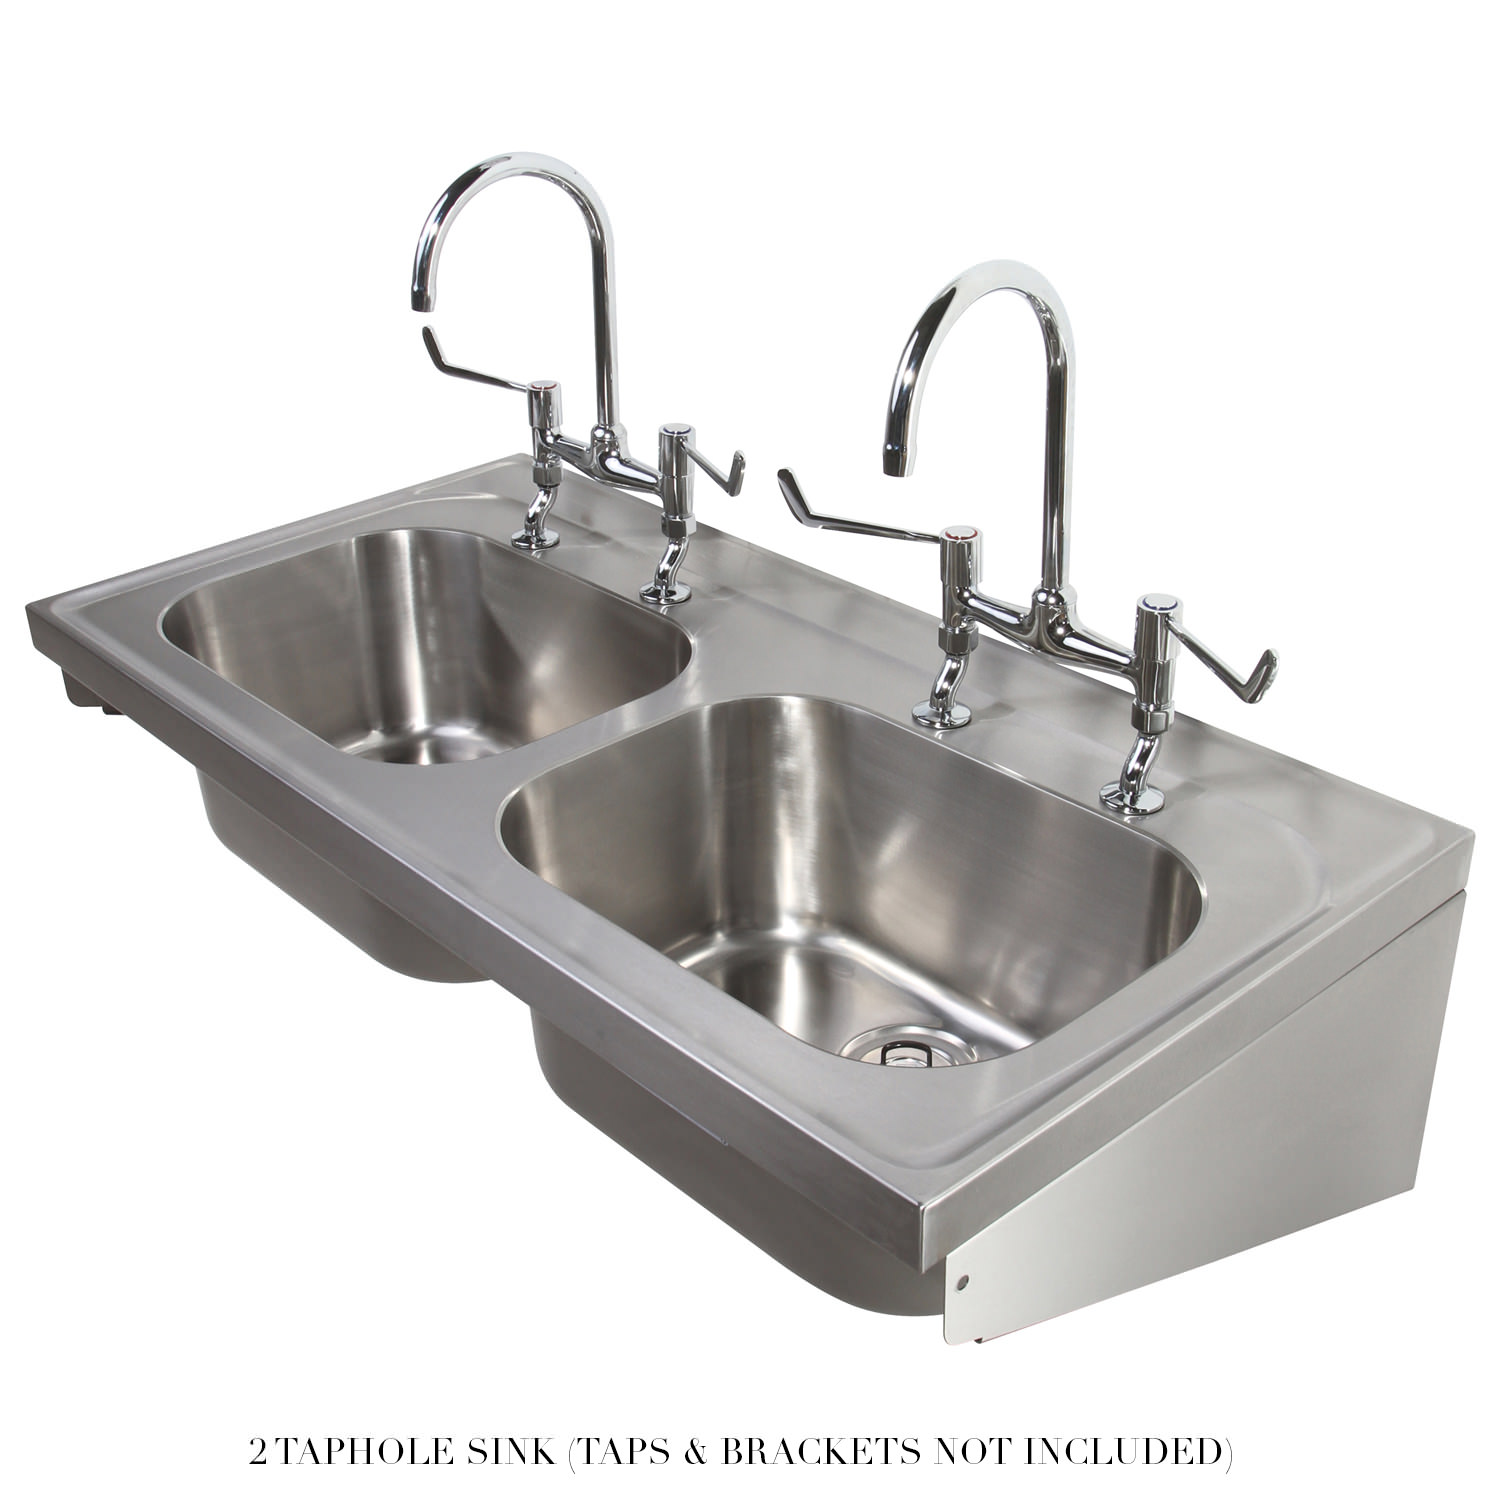 Twyford Stainless Steel 1200 X 600mm Double Bowl Hospital